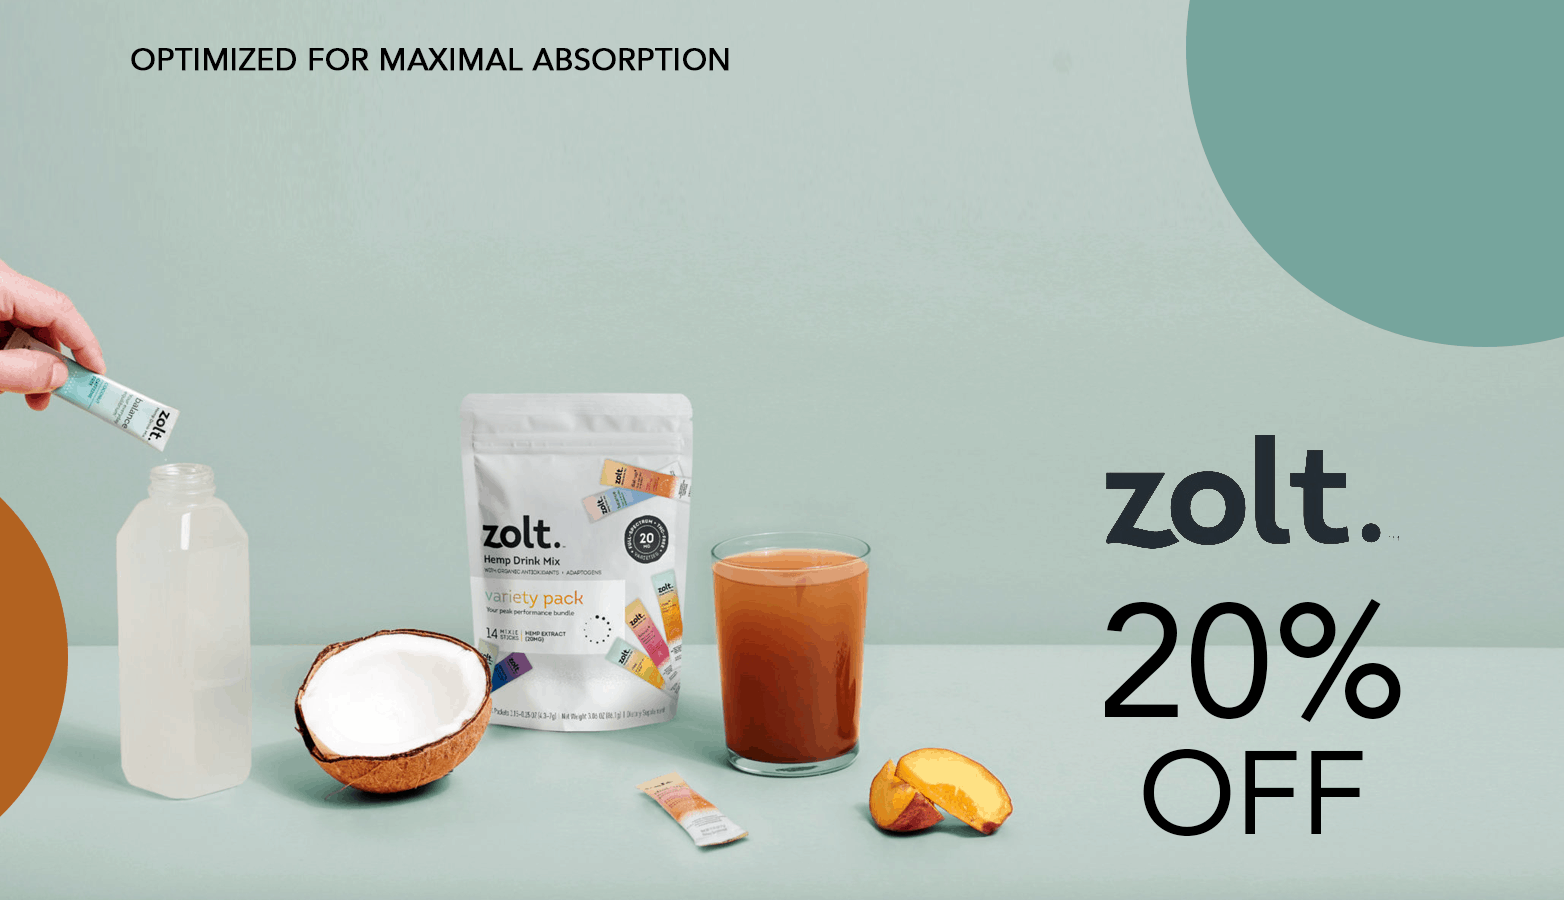 Zolt CBD Coupon Code Offer Website